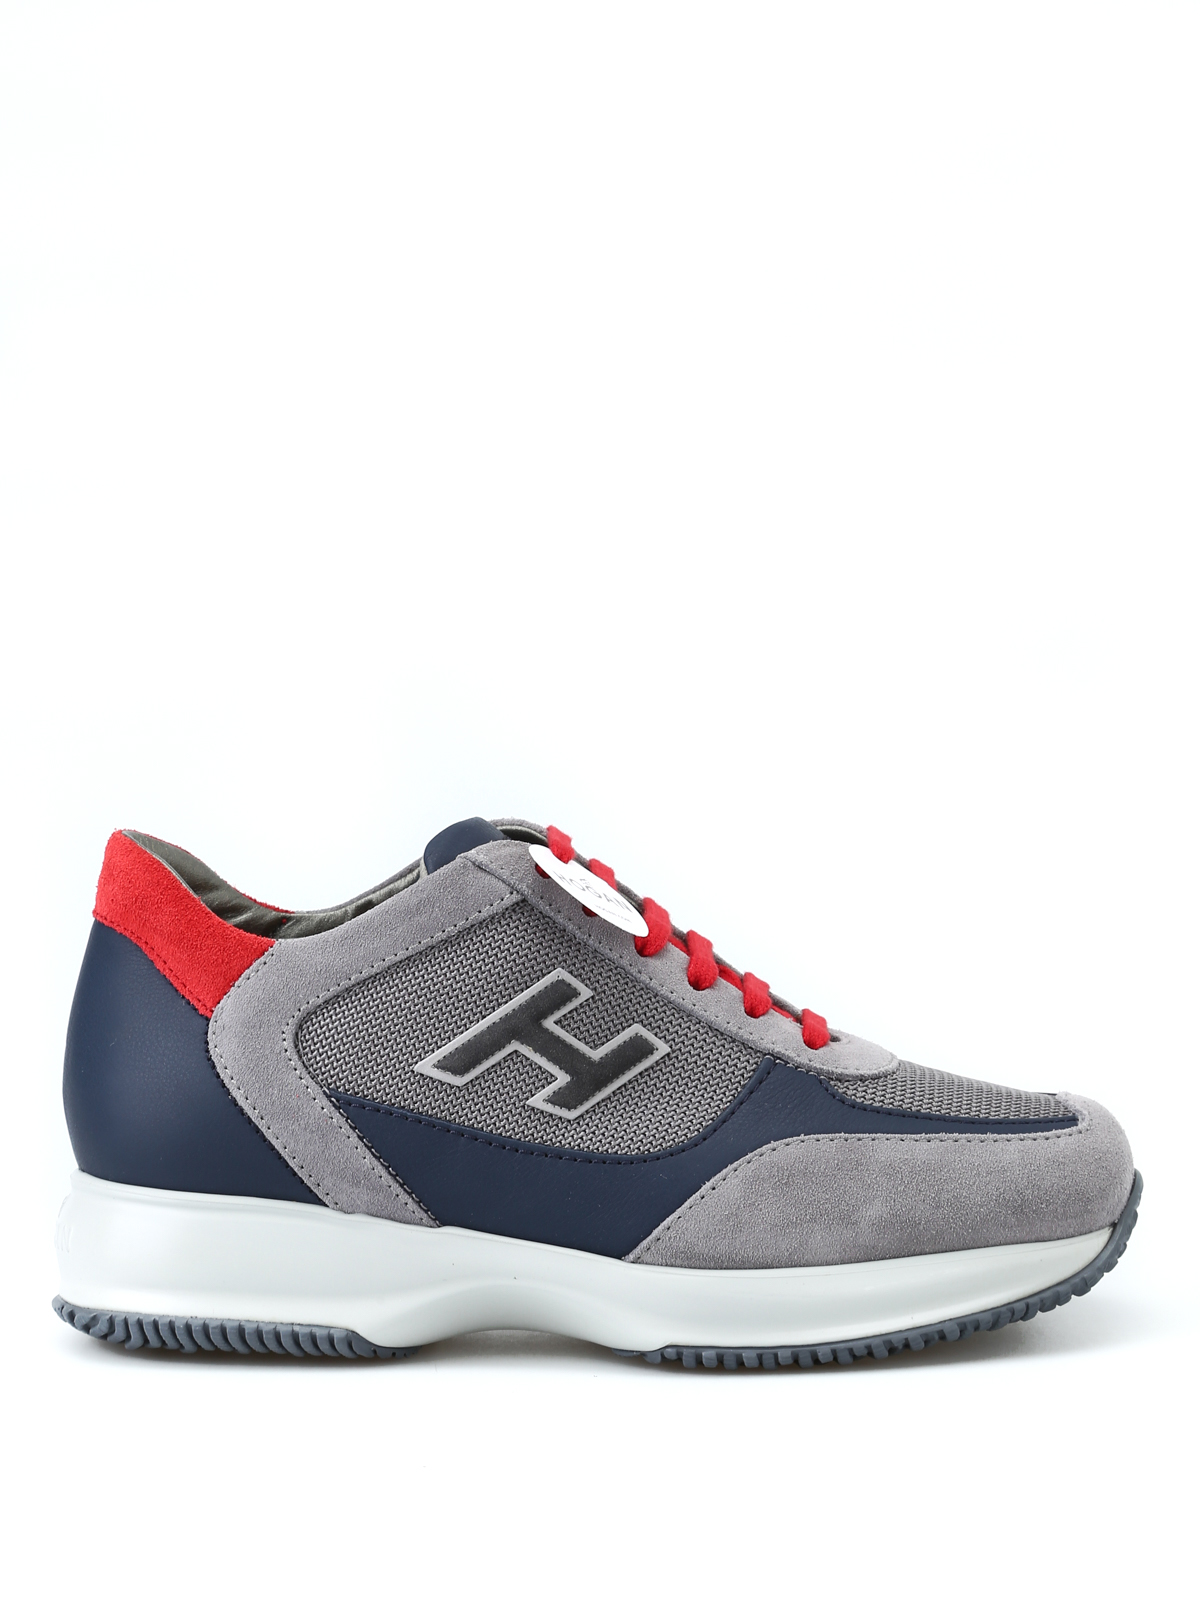 93659304aa13 Hogan - New Interactive H Flock grey and red sneakers - trainers ...